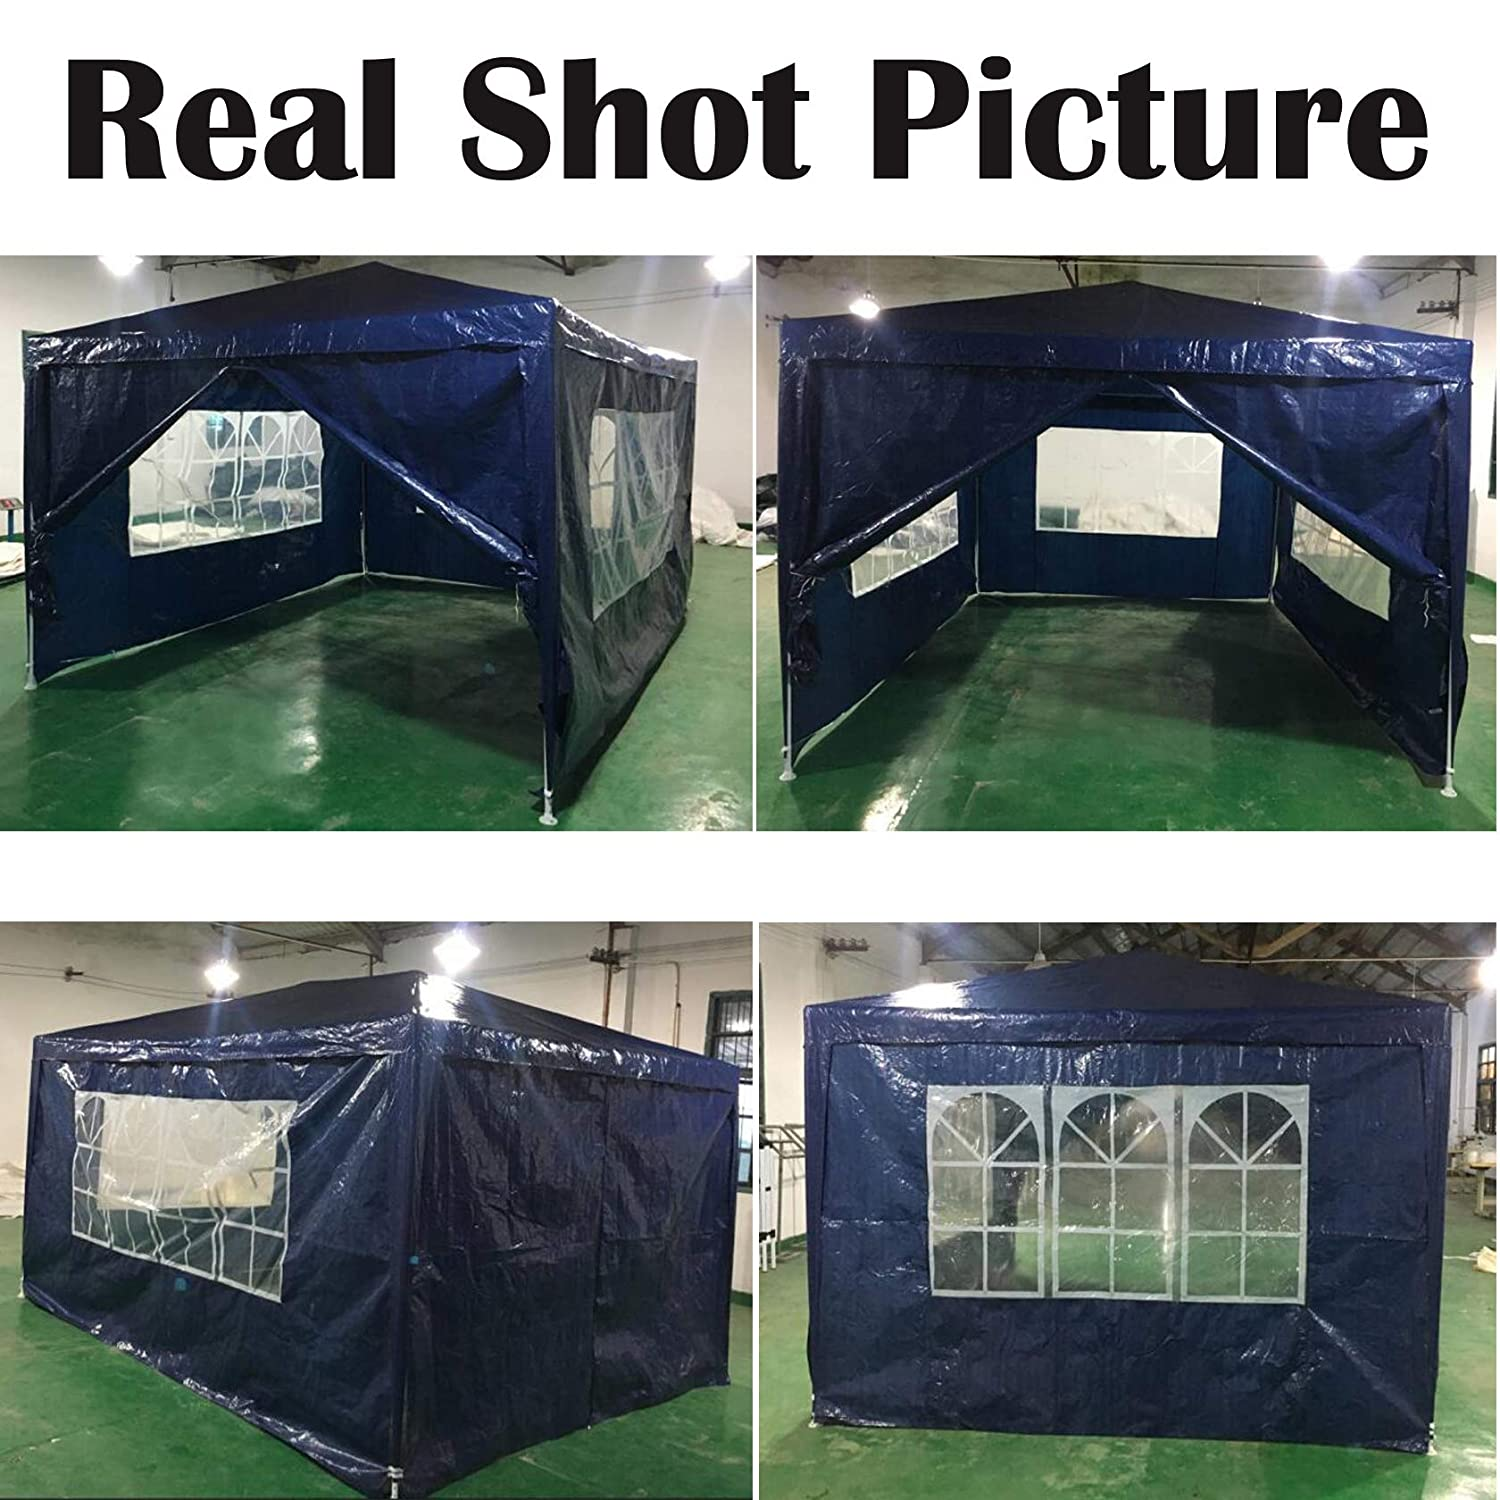 Blue PE Gazebo Marquee Awning Tent Canopy for Outdoor Wedding Garden Party 3x3m Fully Waterproof, 3x6m AutoBaBa Garden Gazebos 3x3m, With Zip Up Side Panel 3x4m